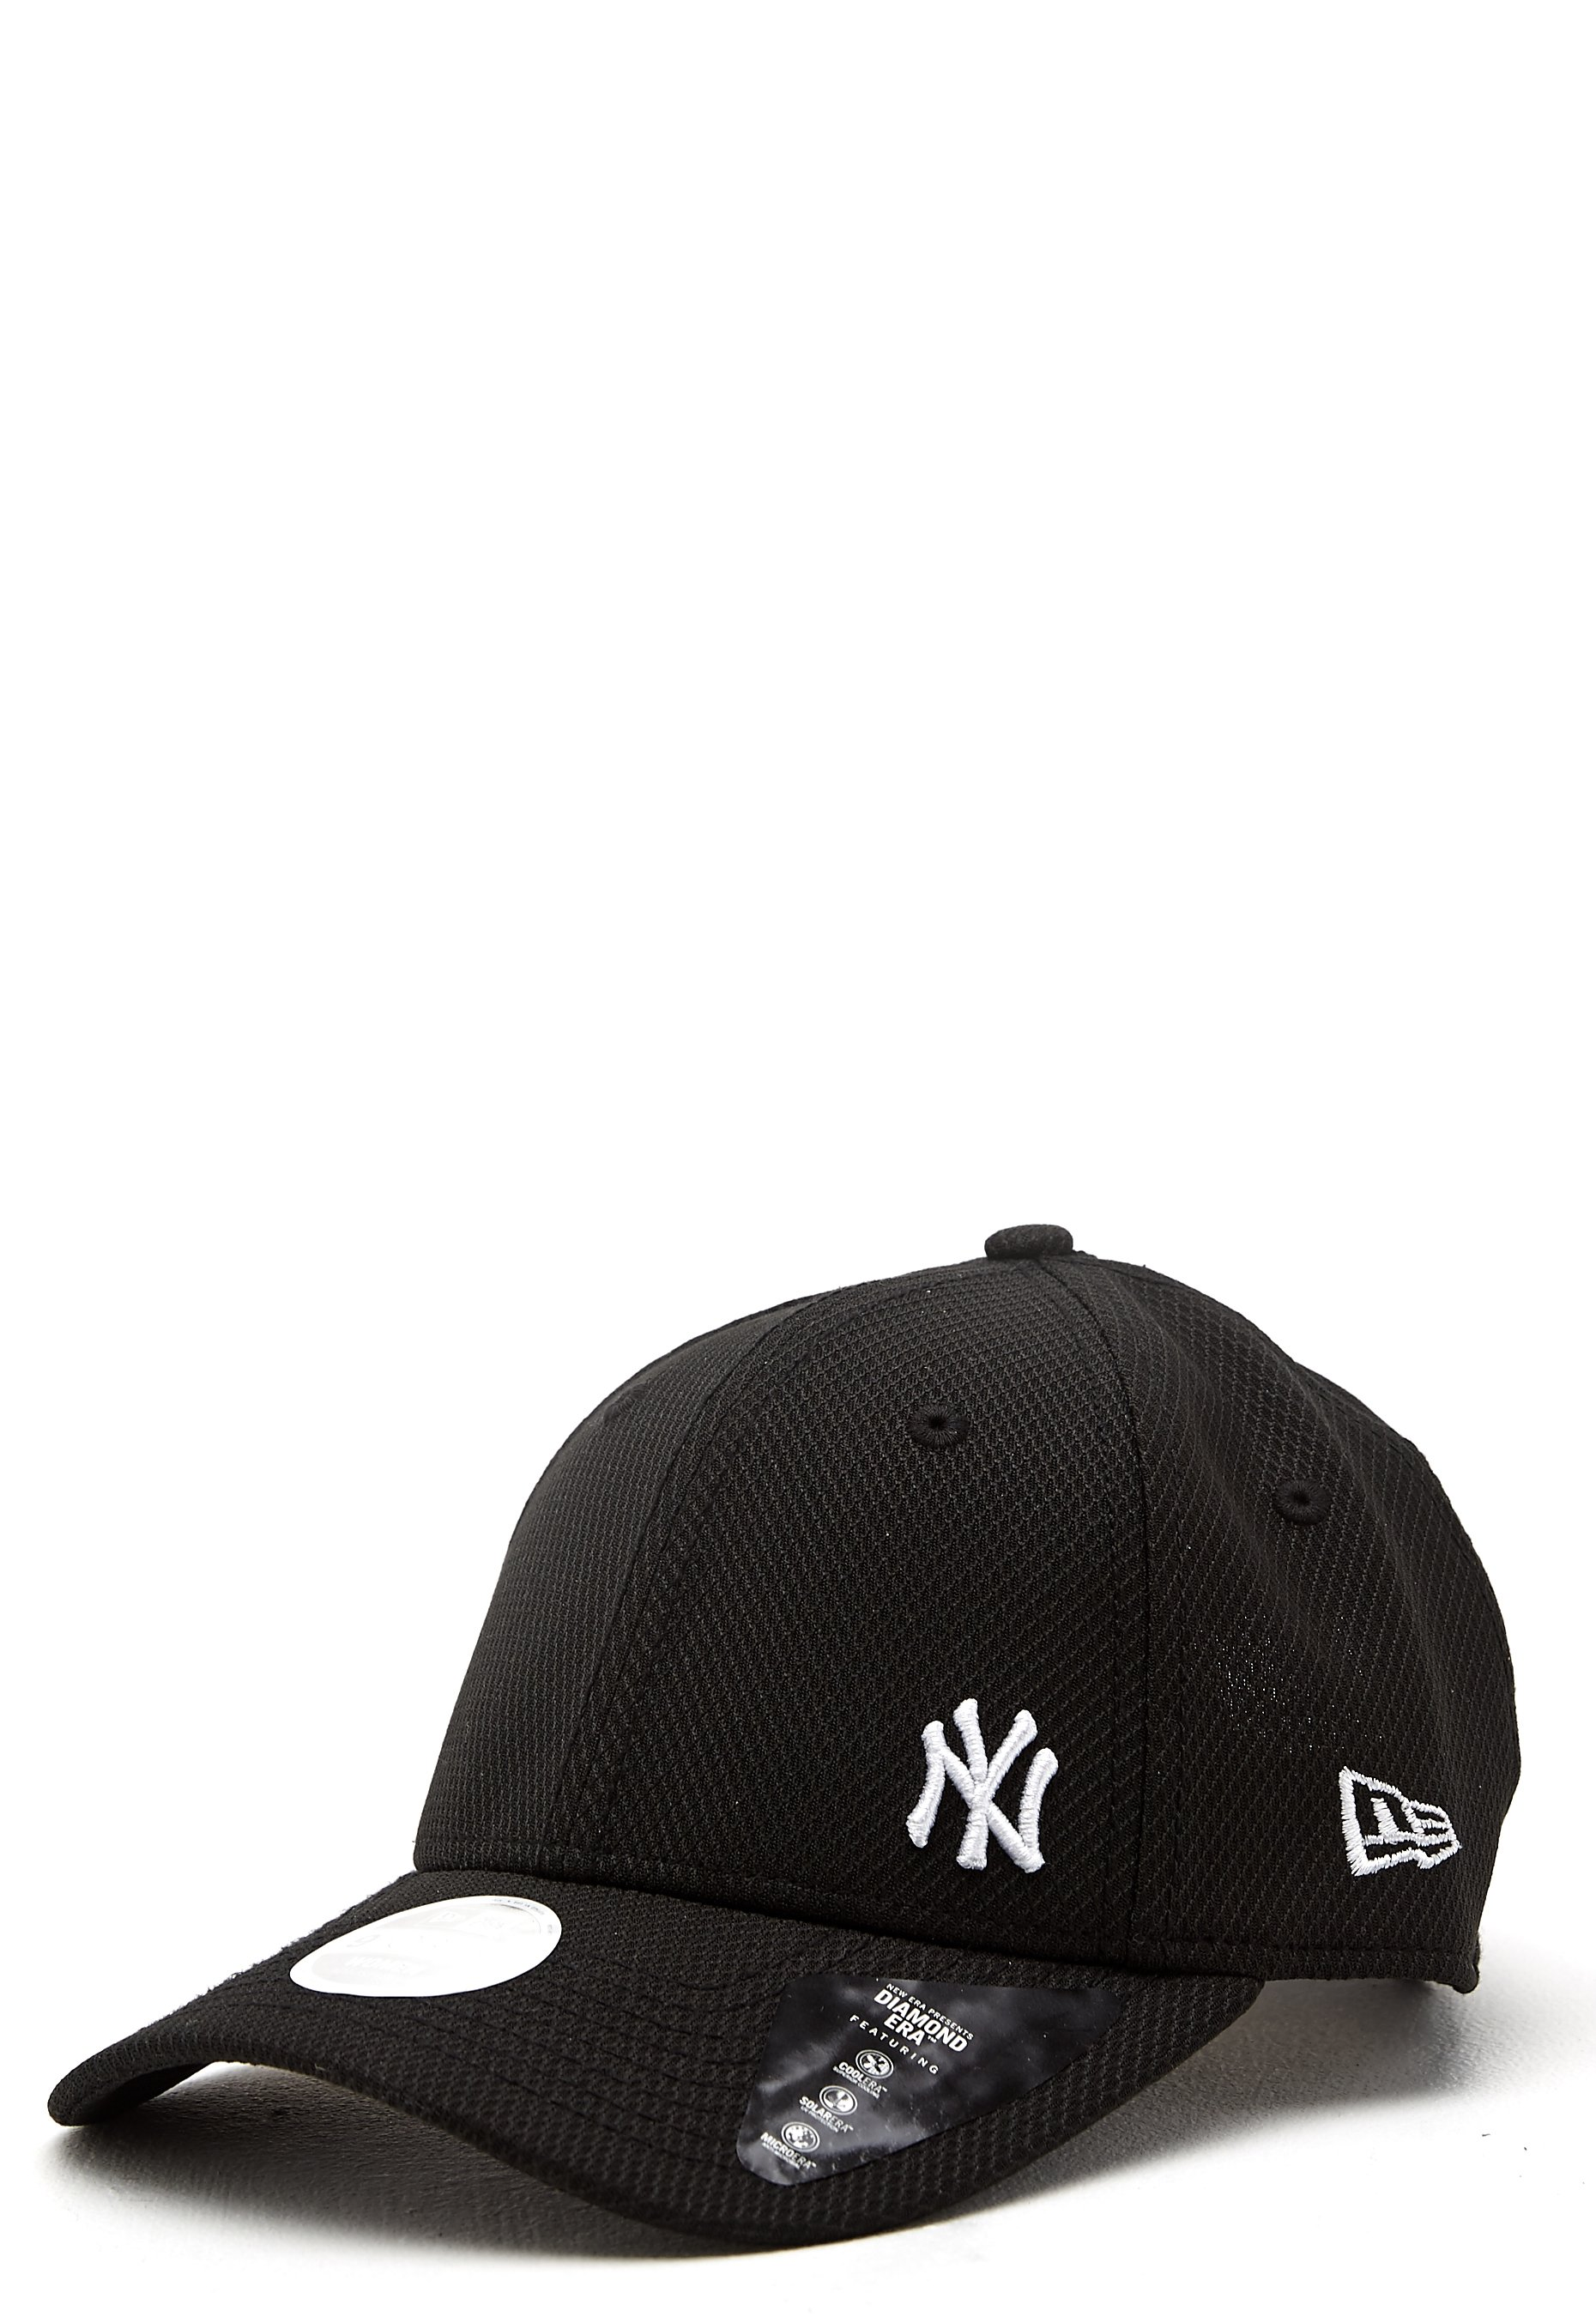 5e1e8f3d New Era 940 Diamond Cap Black/White NEYYA - Bubbleroom